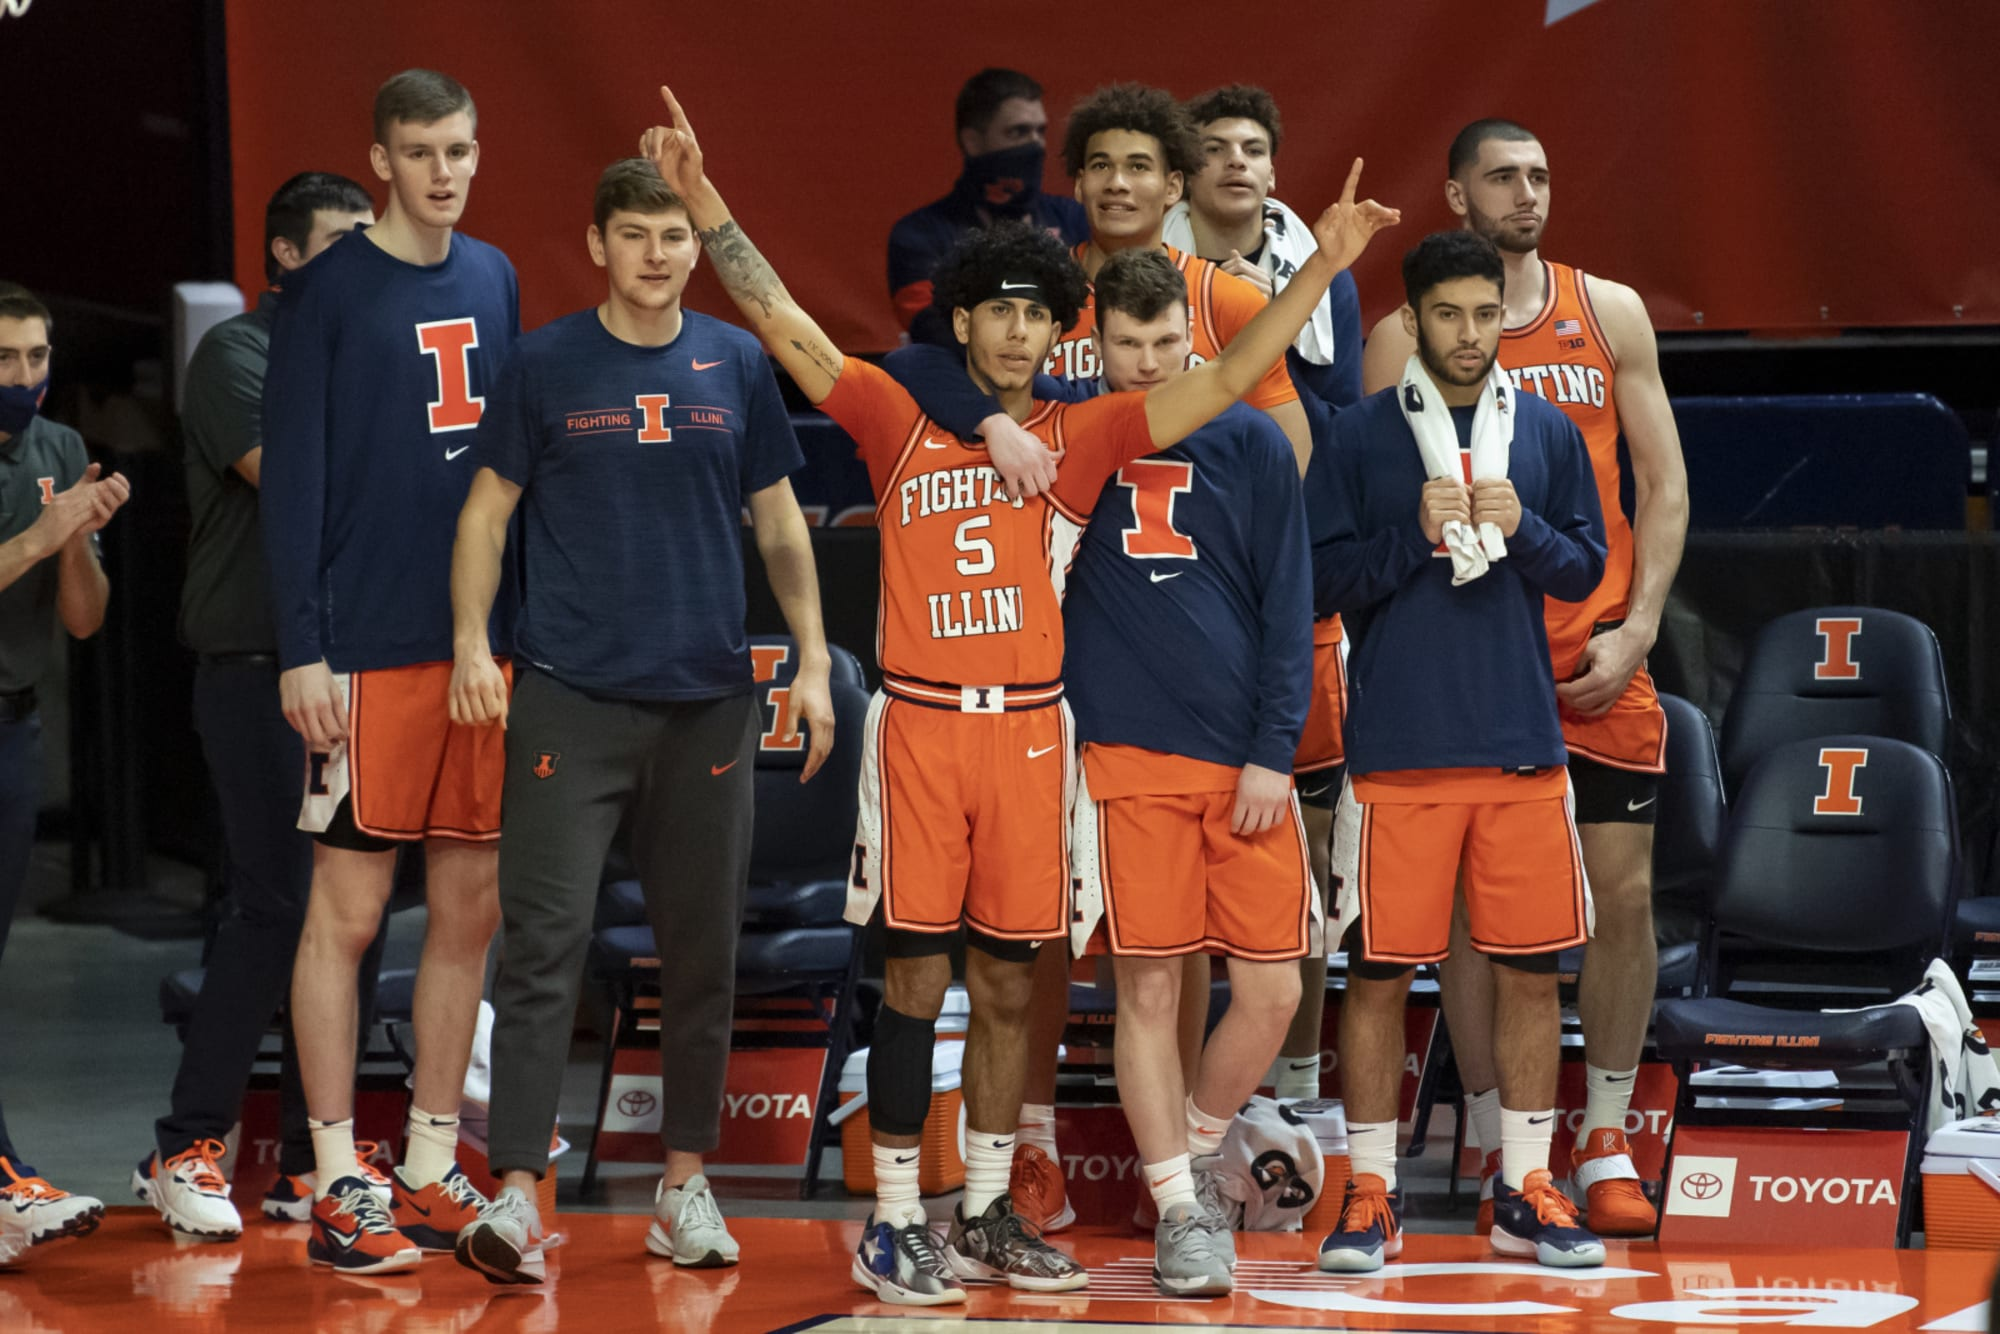 Illinois Basketball: Best, worst and most likely scenarios for the Illini